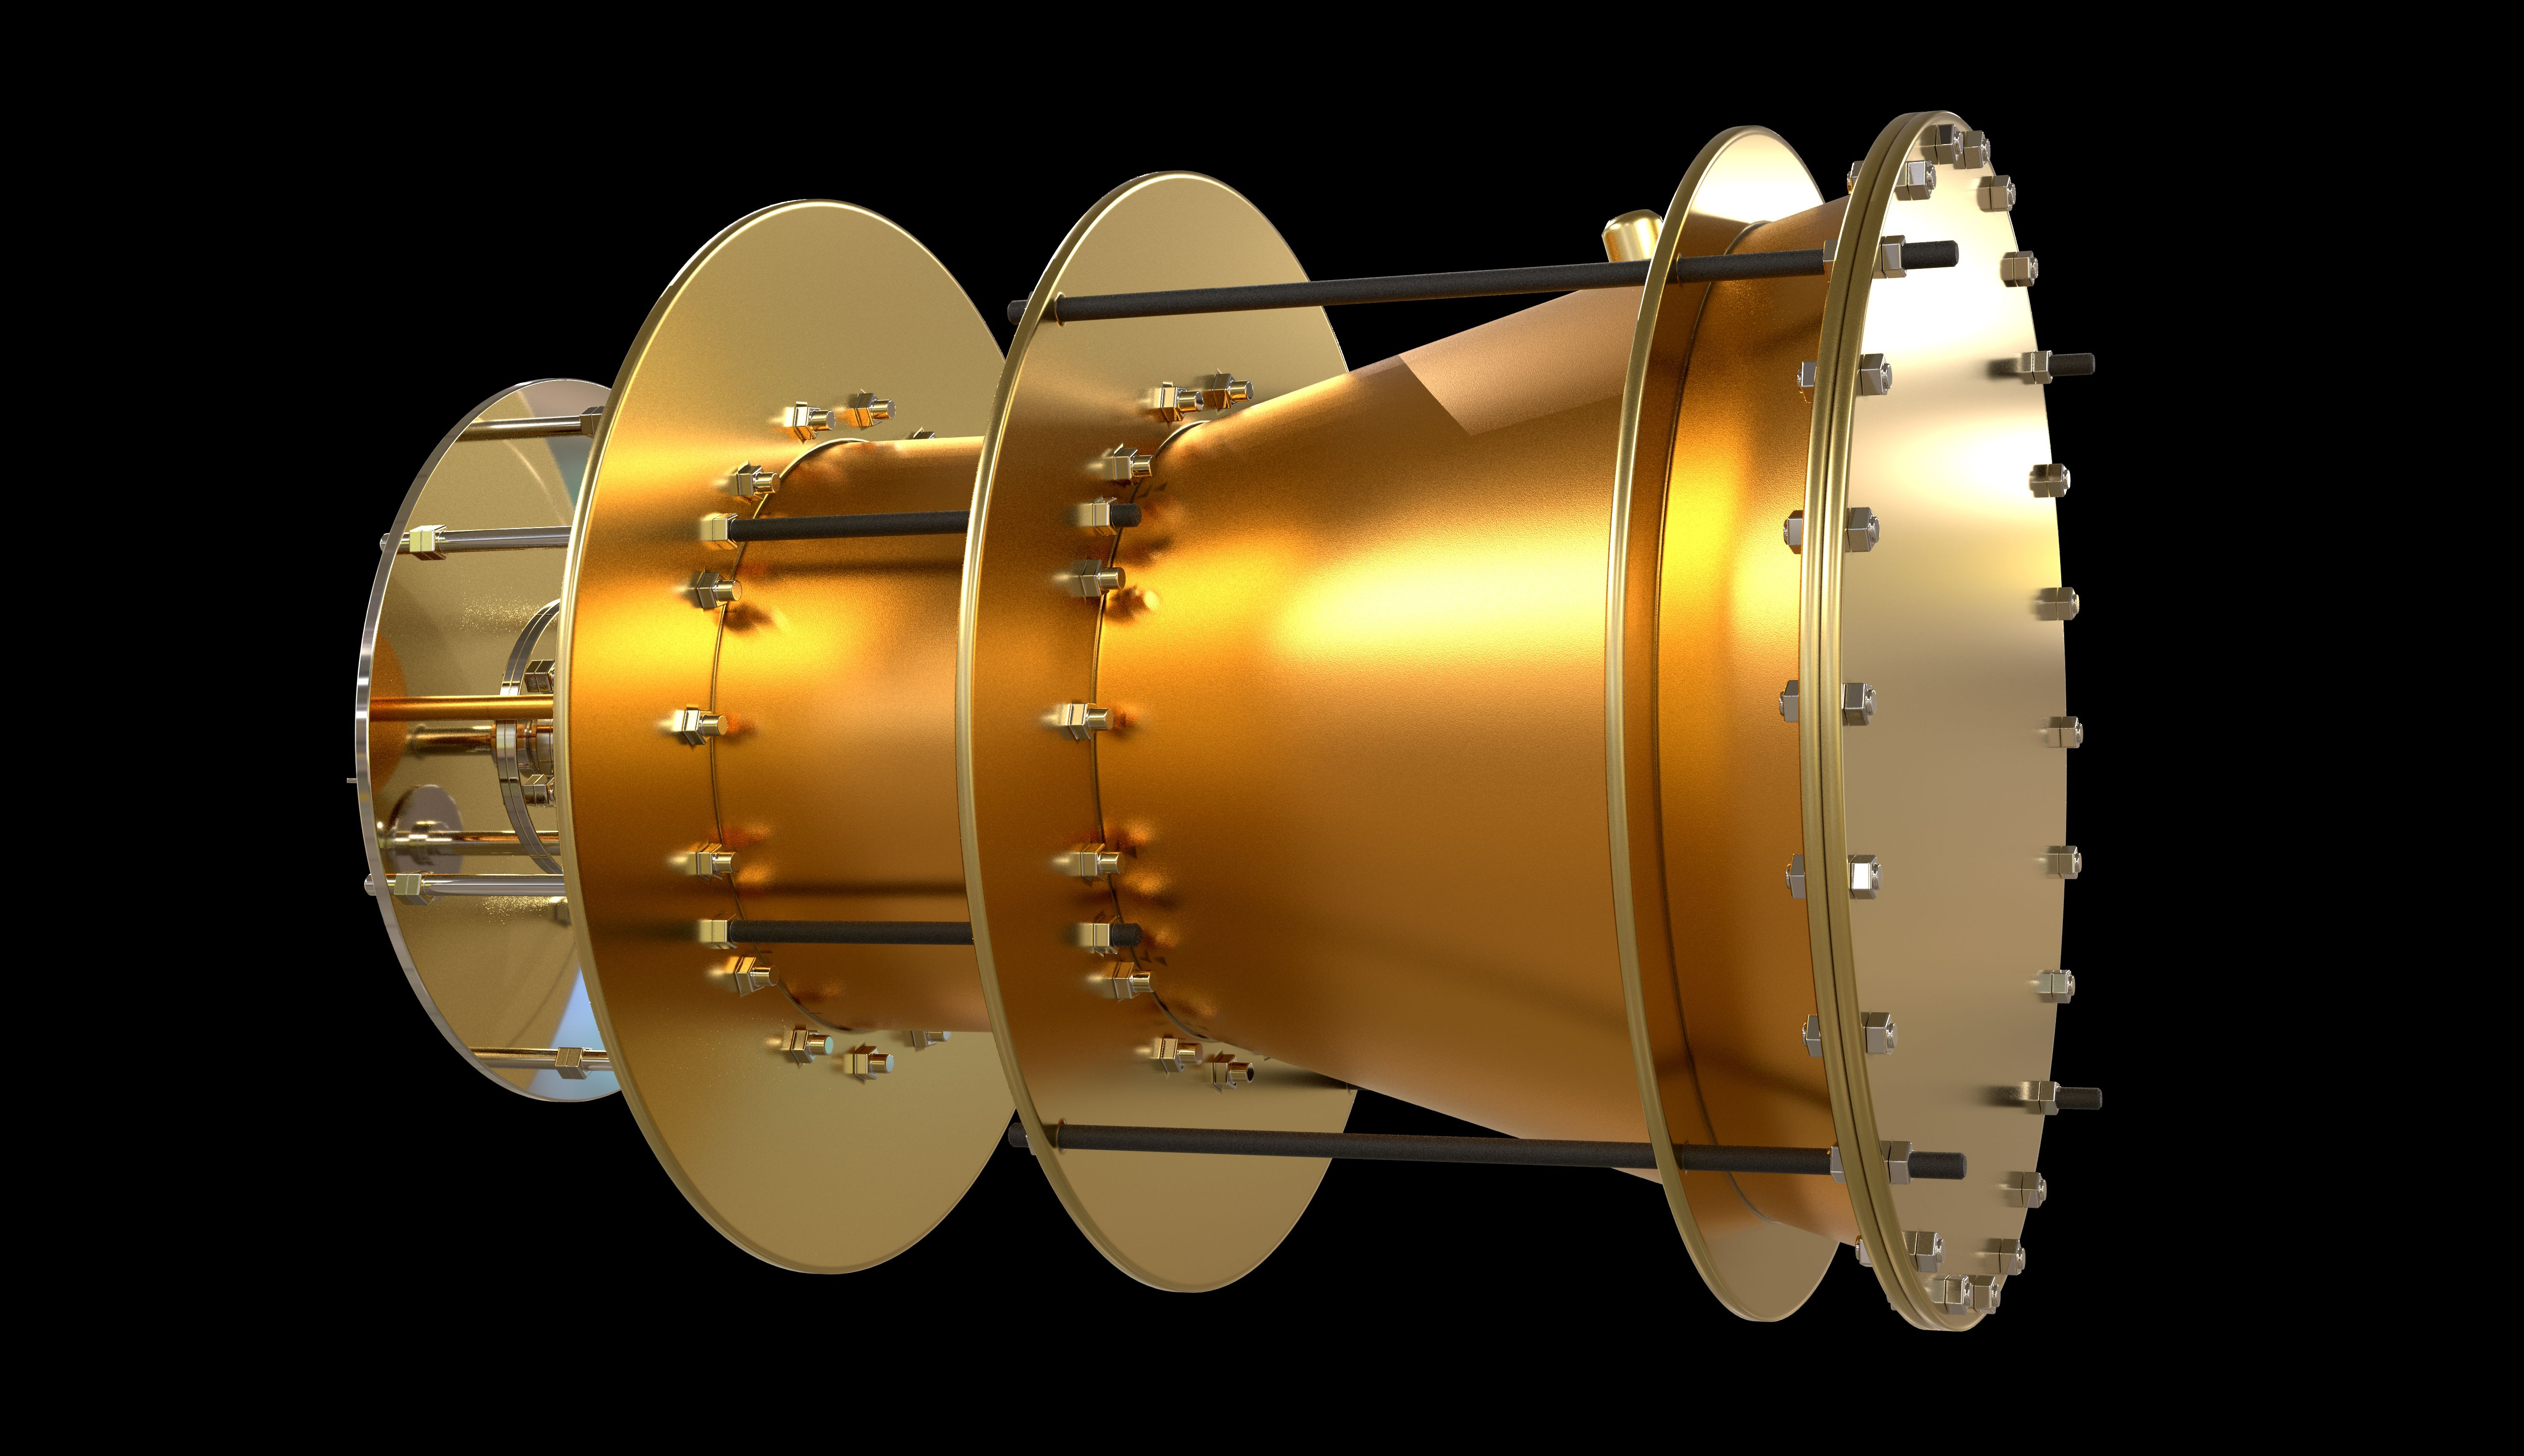 """Why DARPA Is Betting a Million Bucks on an """"Impossible"""" Space Drive"""